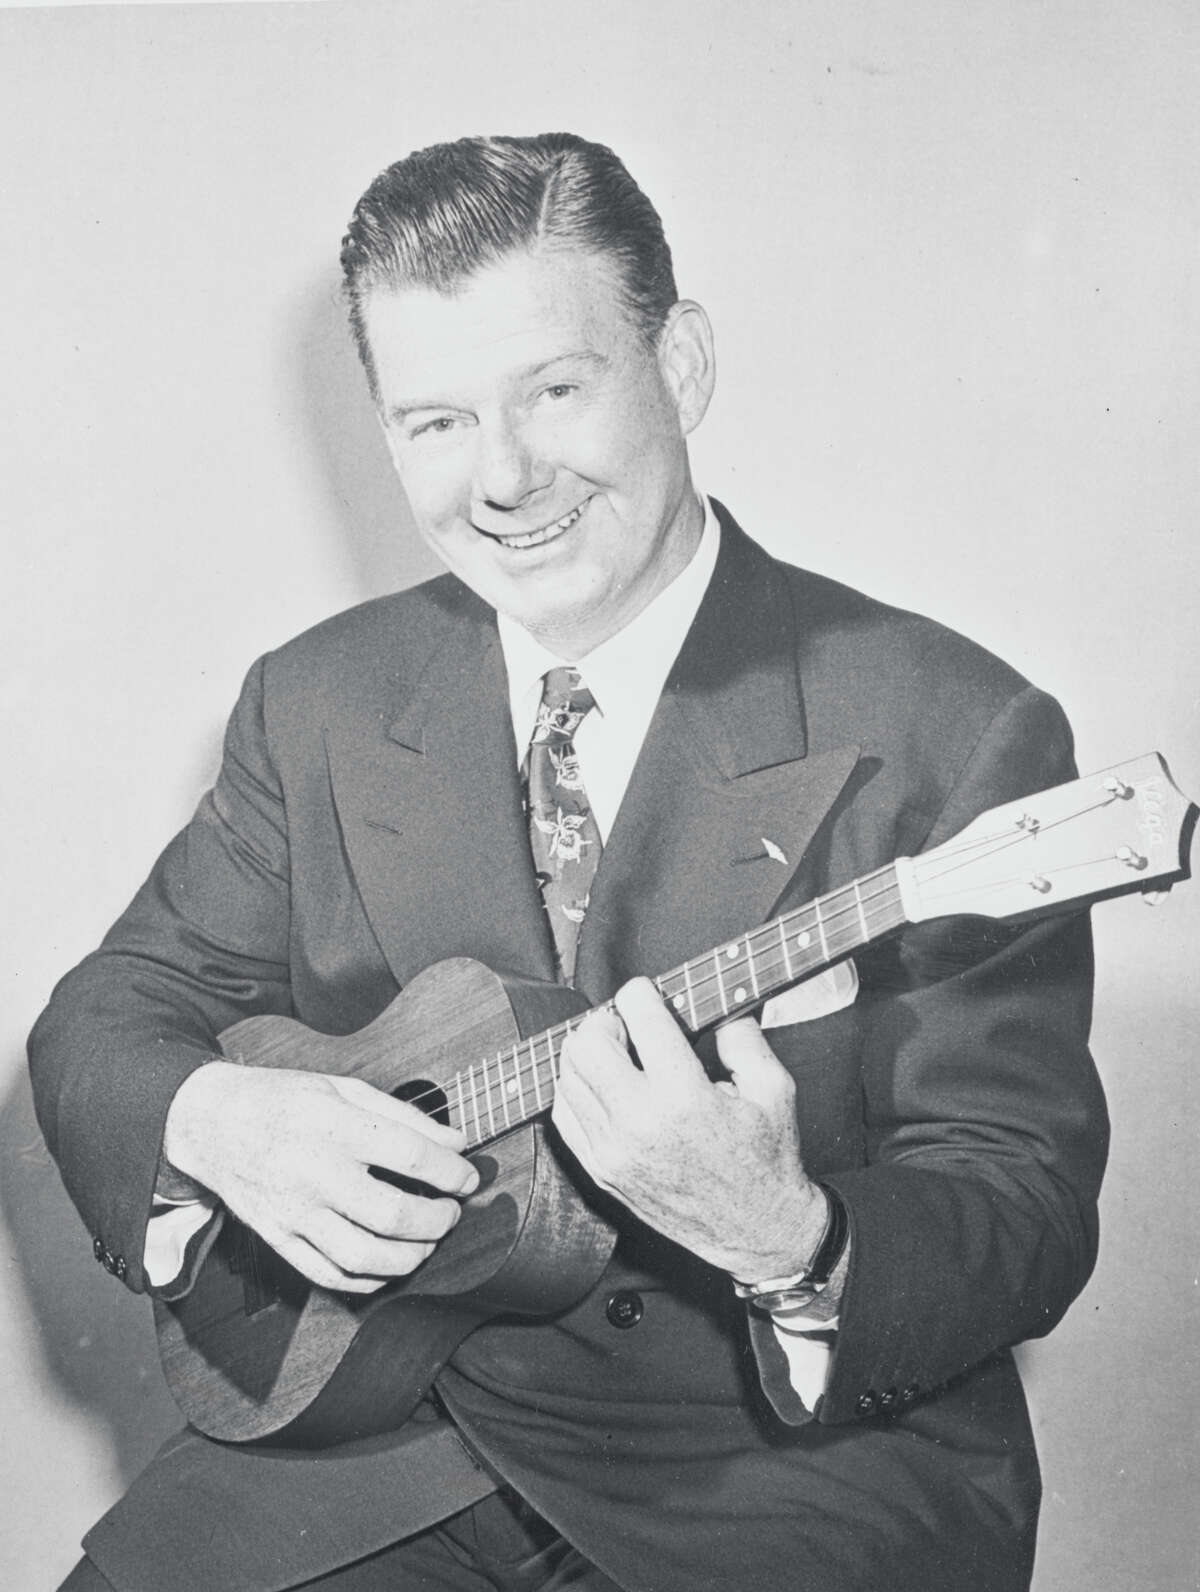 Godfrey, won of the early stars of TV, was known for playing the ukulele